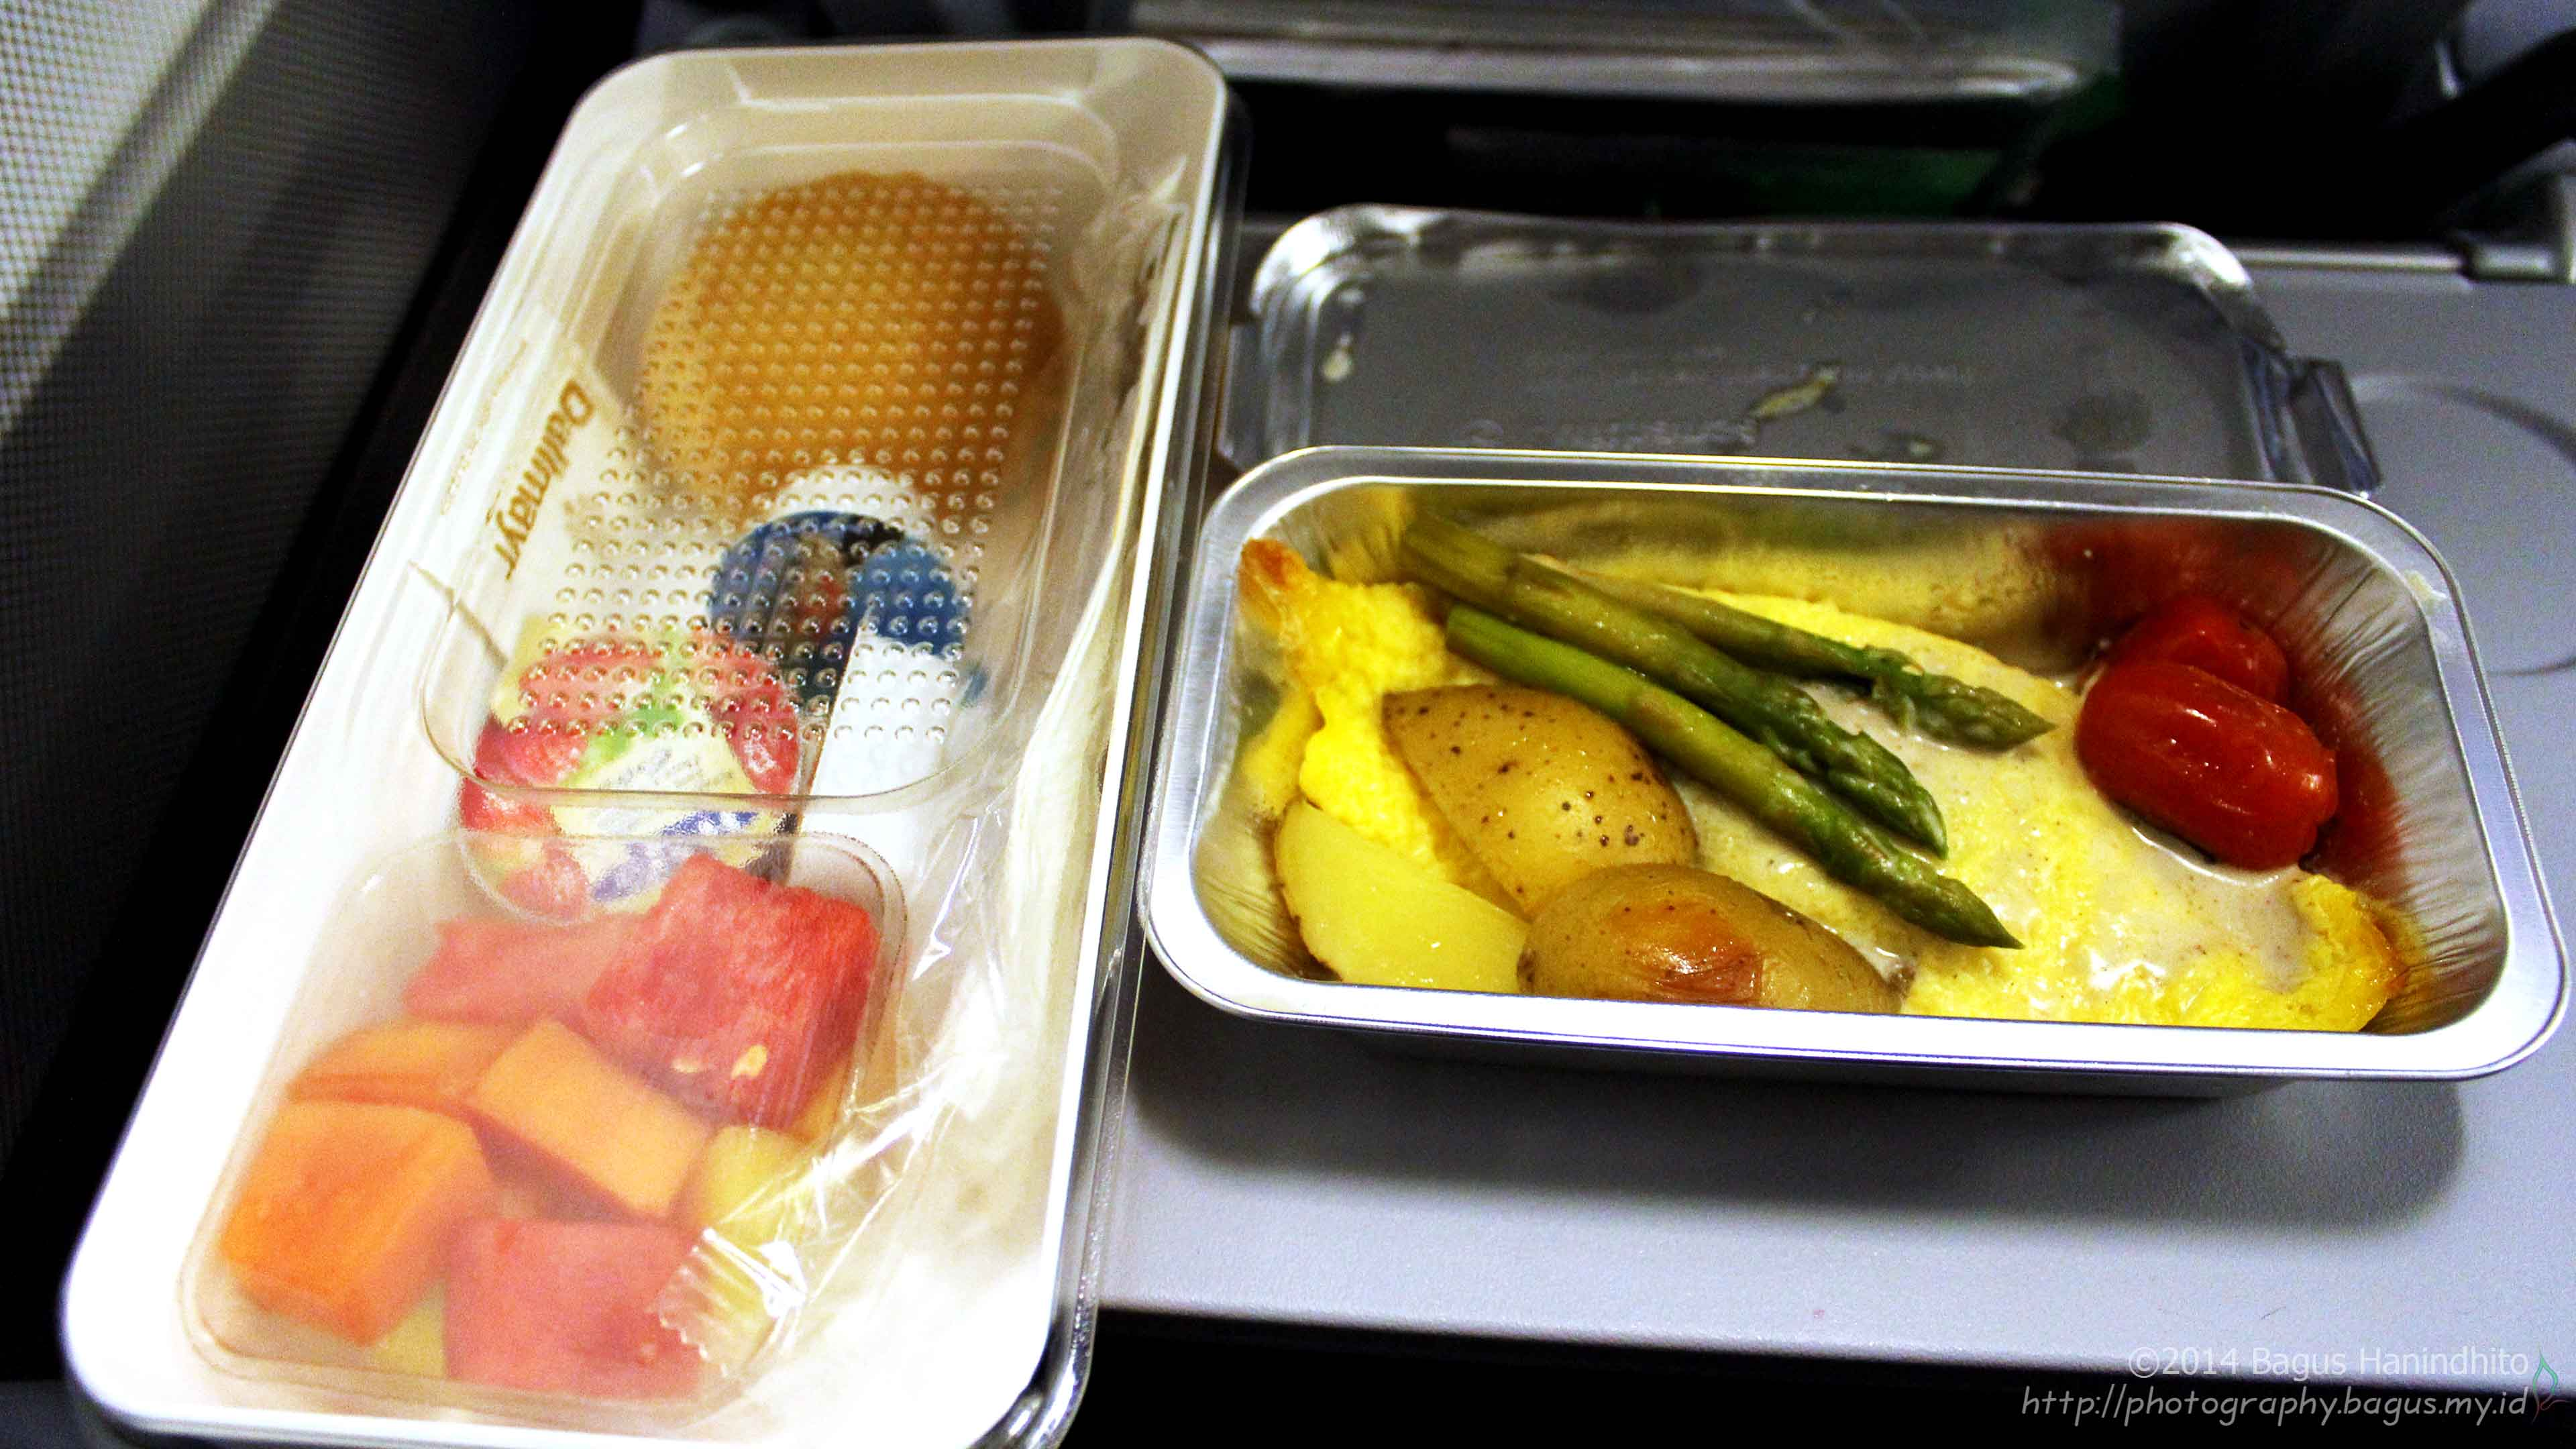 My first breakfast in Europe was served during my flight from KUL to FRA on LH738 just one hours before touchdown.